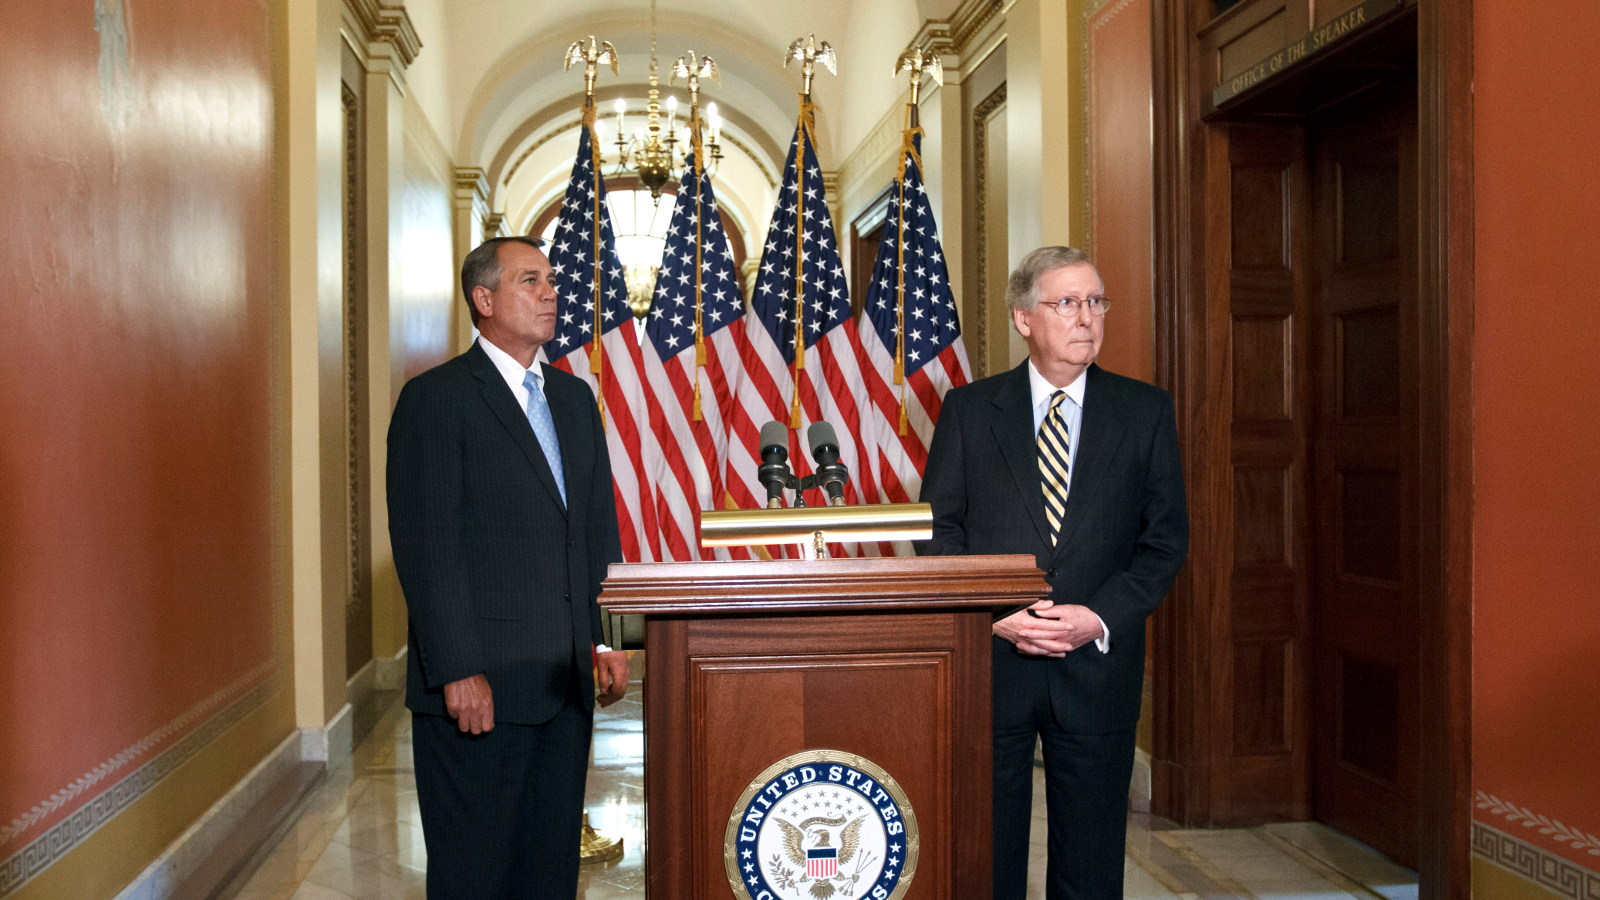 House Speaker John Boehner, R-Ohio, left, and Senate Minority Leader Mitch McConnell, R-Ky., the top two Republicans in Congress, talk about their lunch meeting with President Obama to discuss rising gasoline prices, at a news conference at the Capitol in Washington, Feb. 29, 2012.